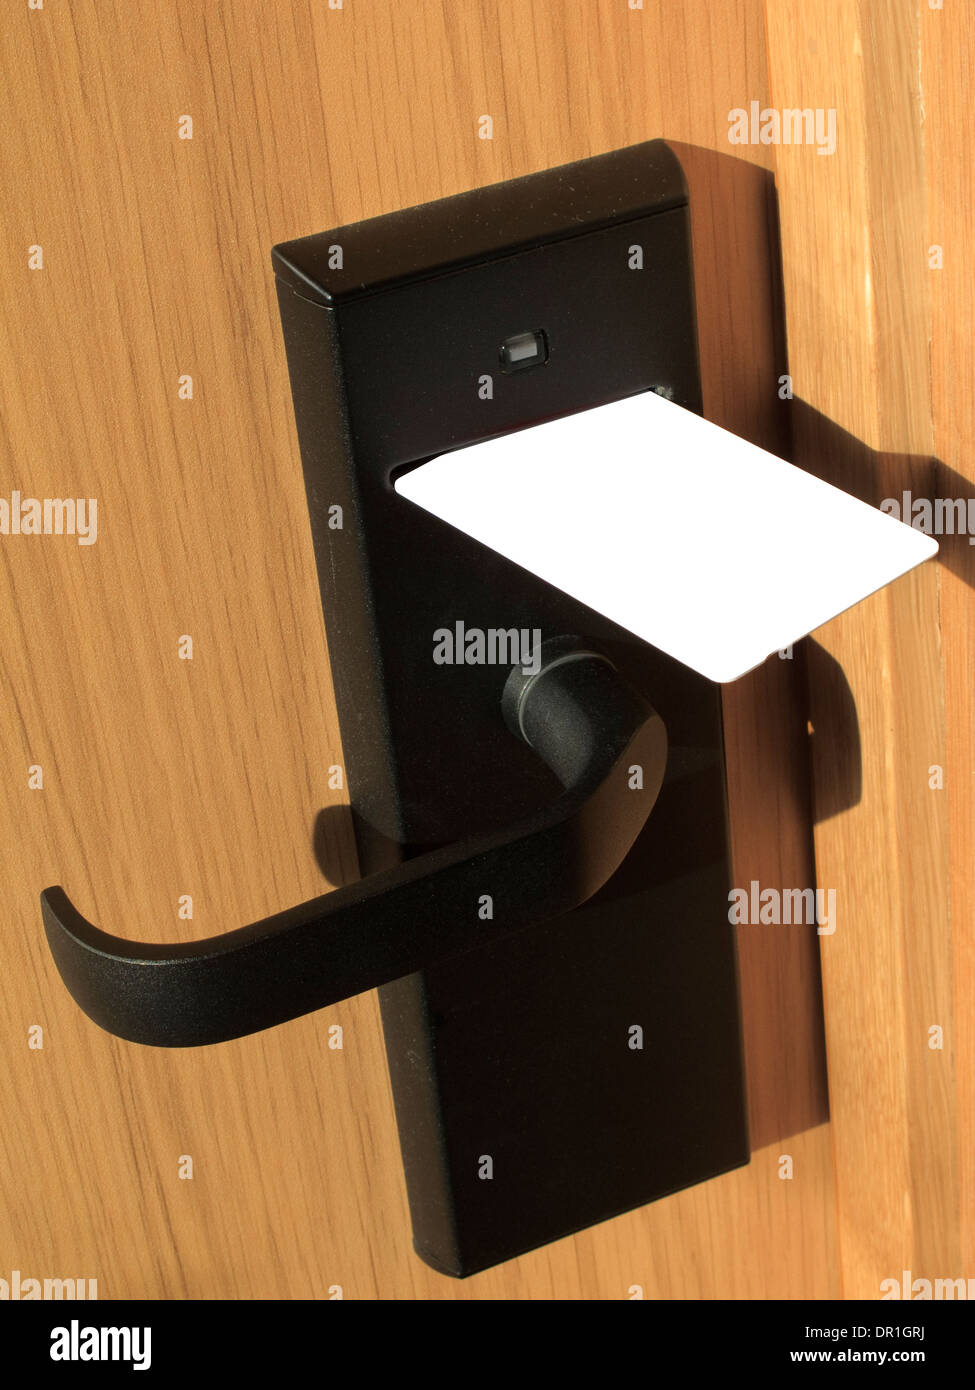 hotel-door-magnetic-card-key-DR1GRJ.jpg